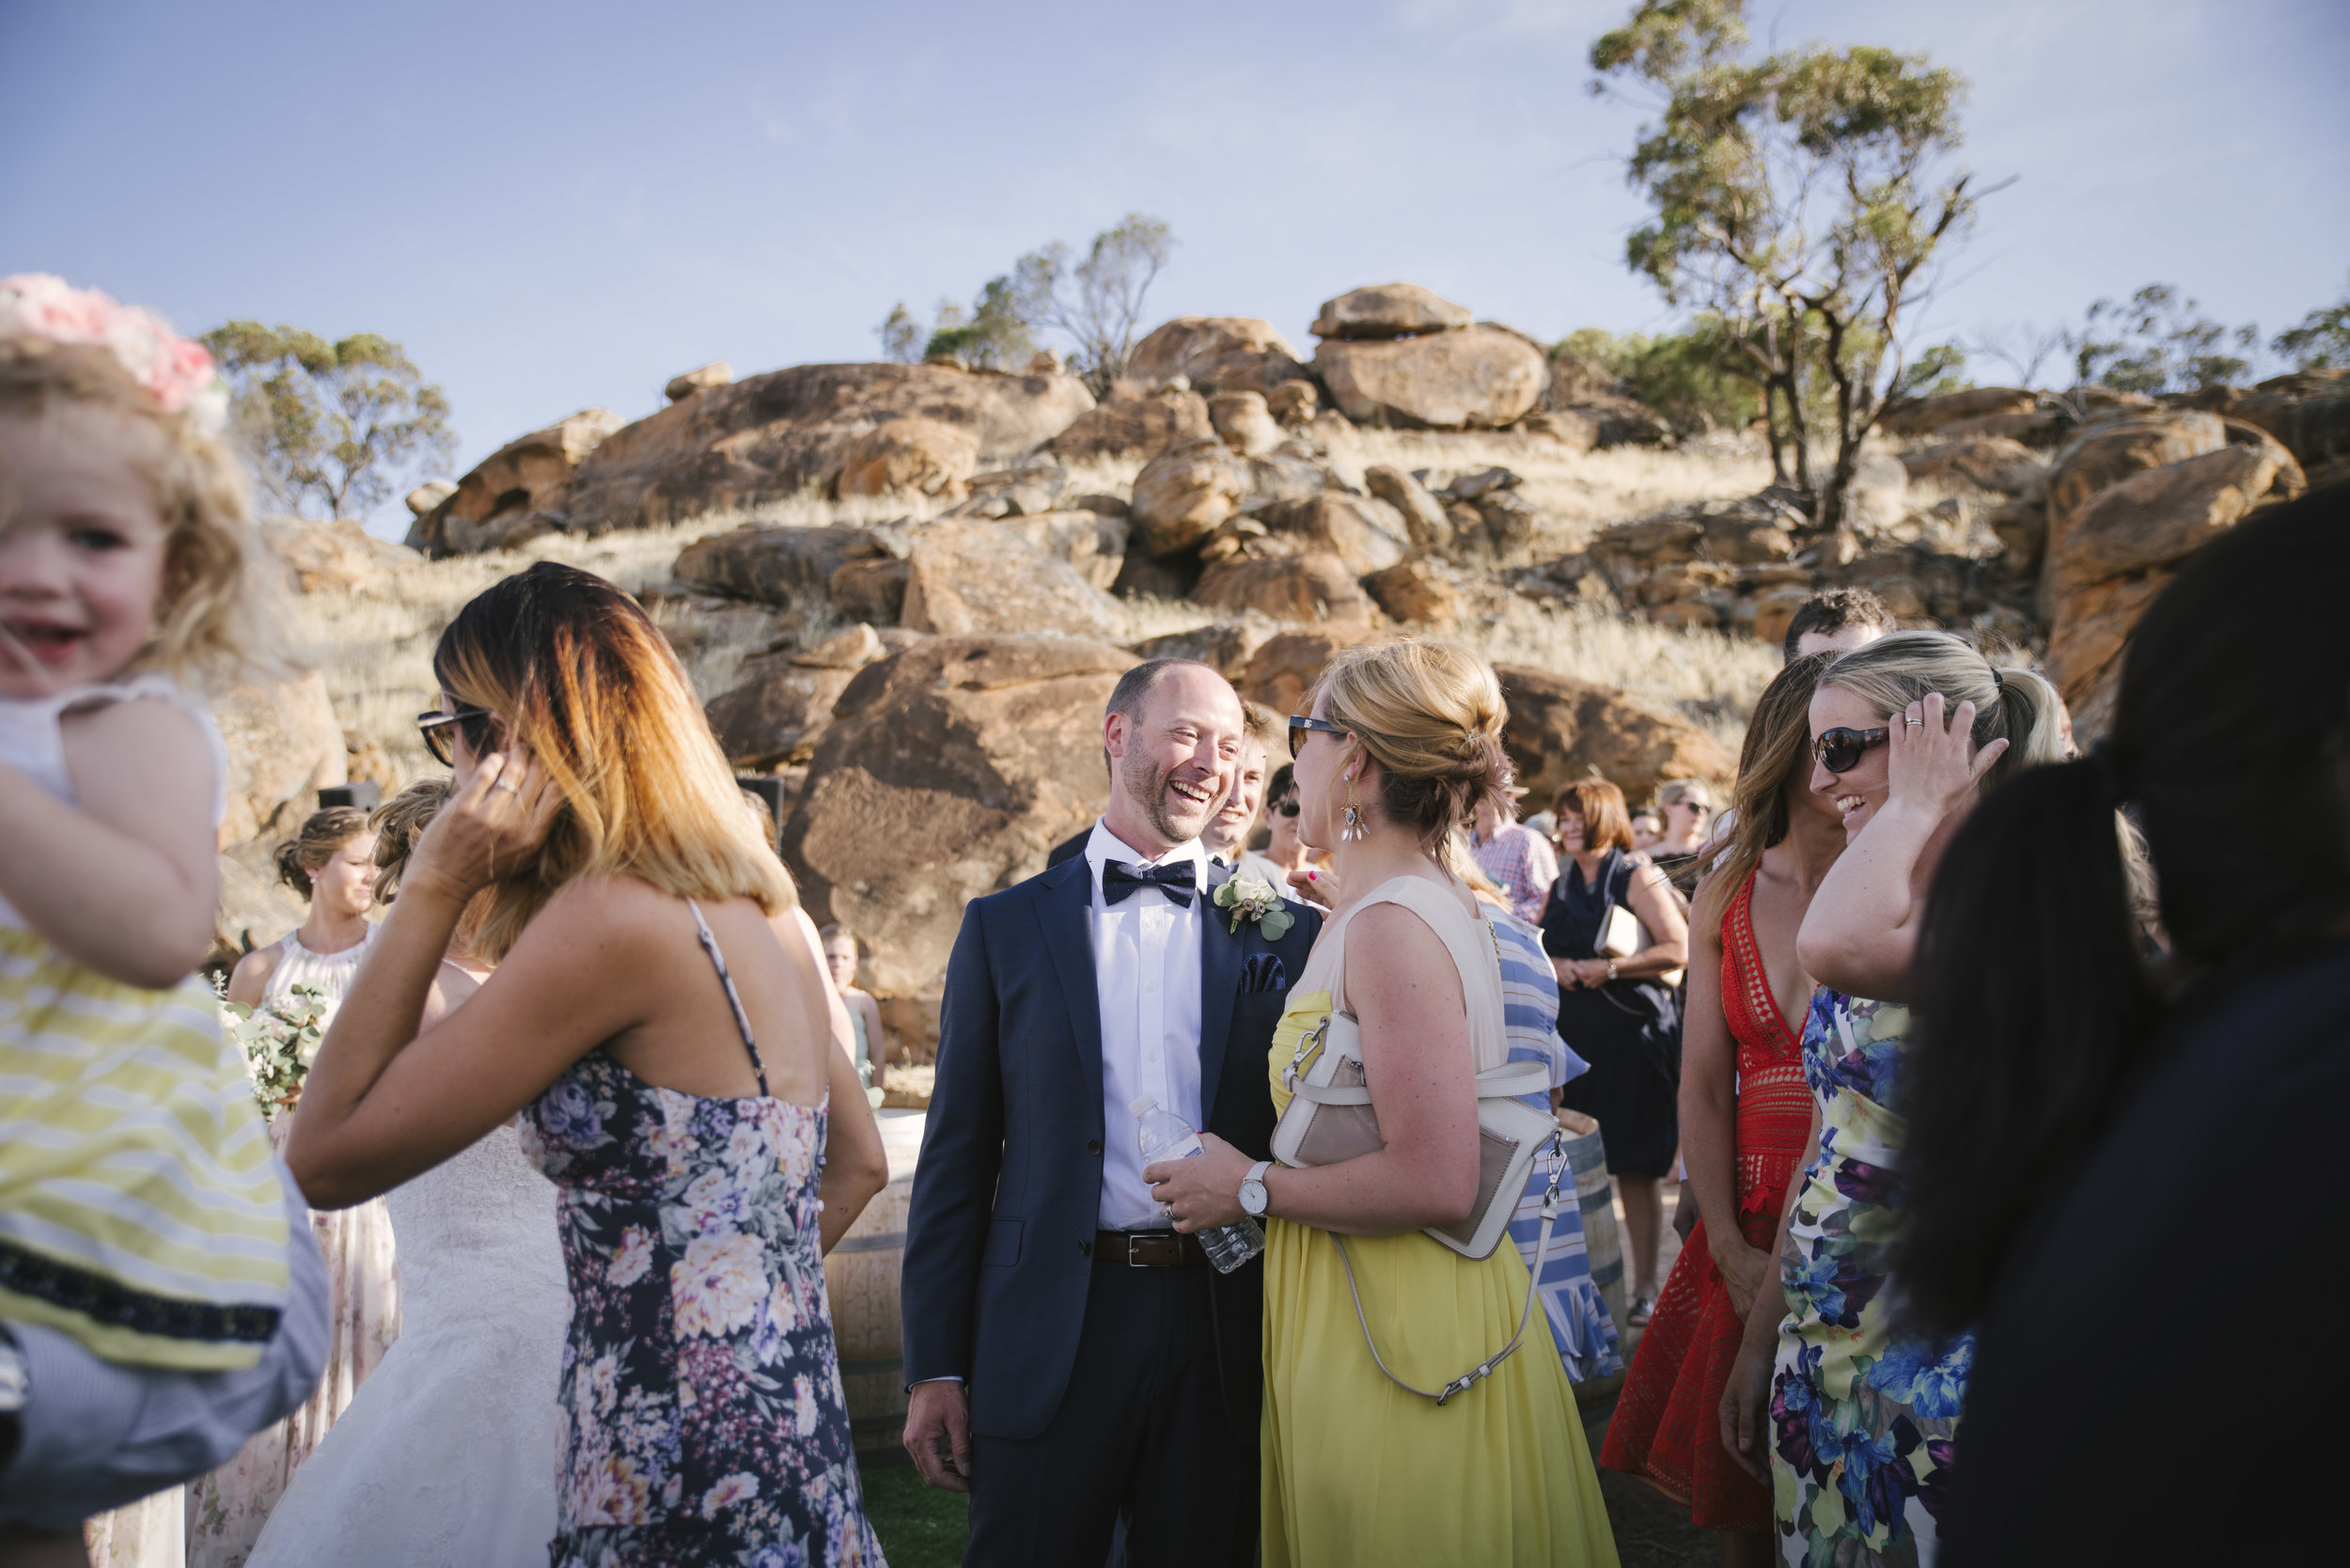 Wheatbelt Merredin Rustic Rural Farm Wedding (33).jpg